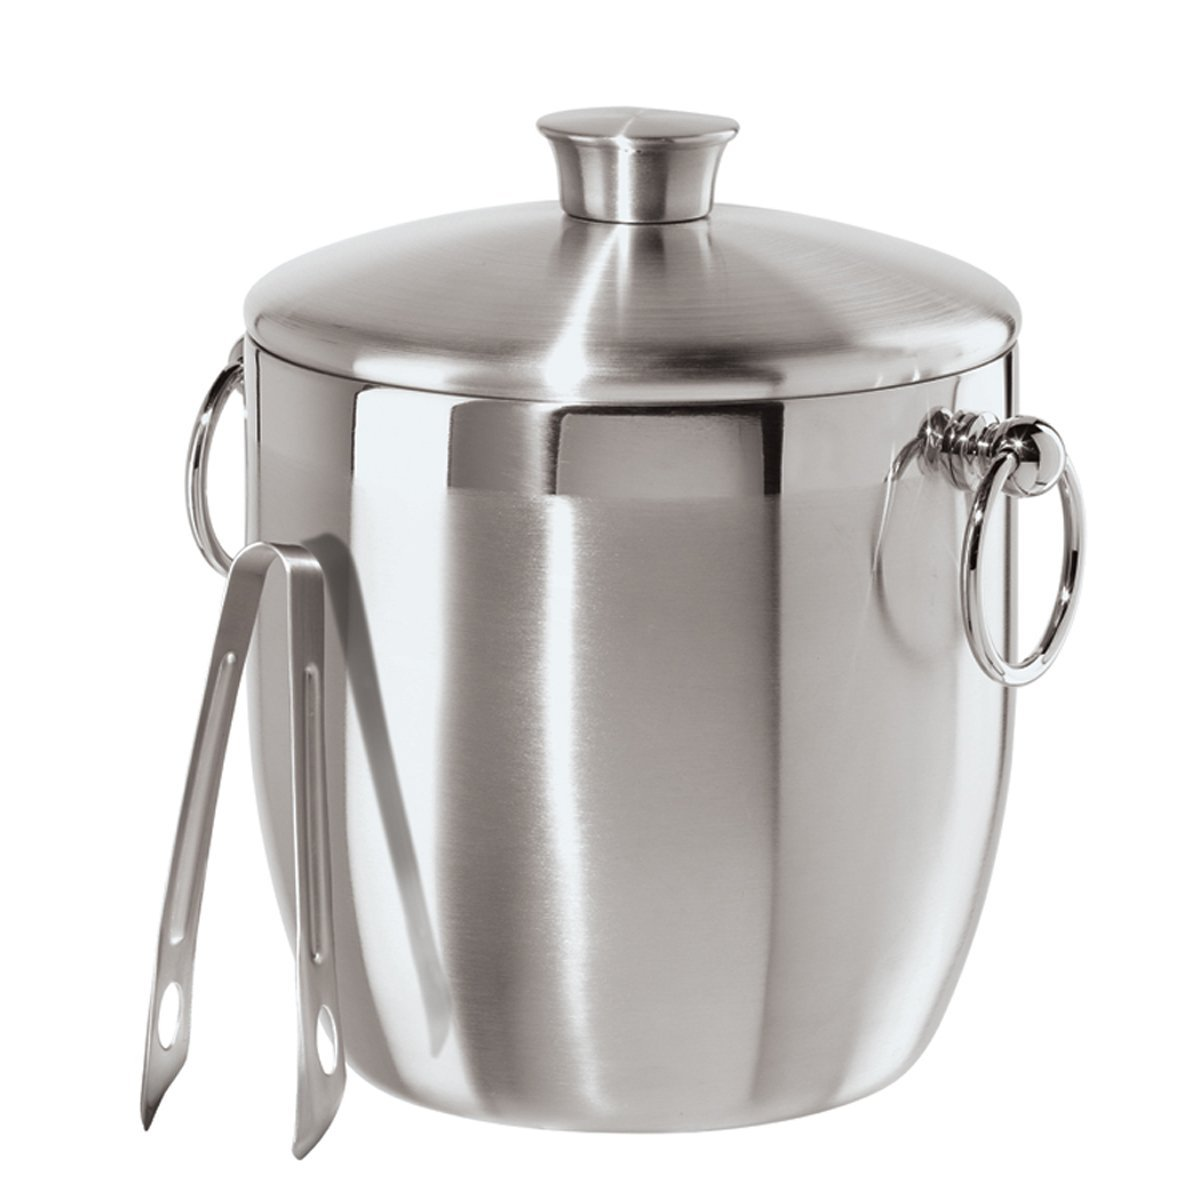 5. Oggi Stainless Steel Ice Bucket with Tongs - 10 Best Ice Buckets